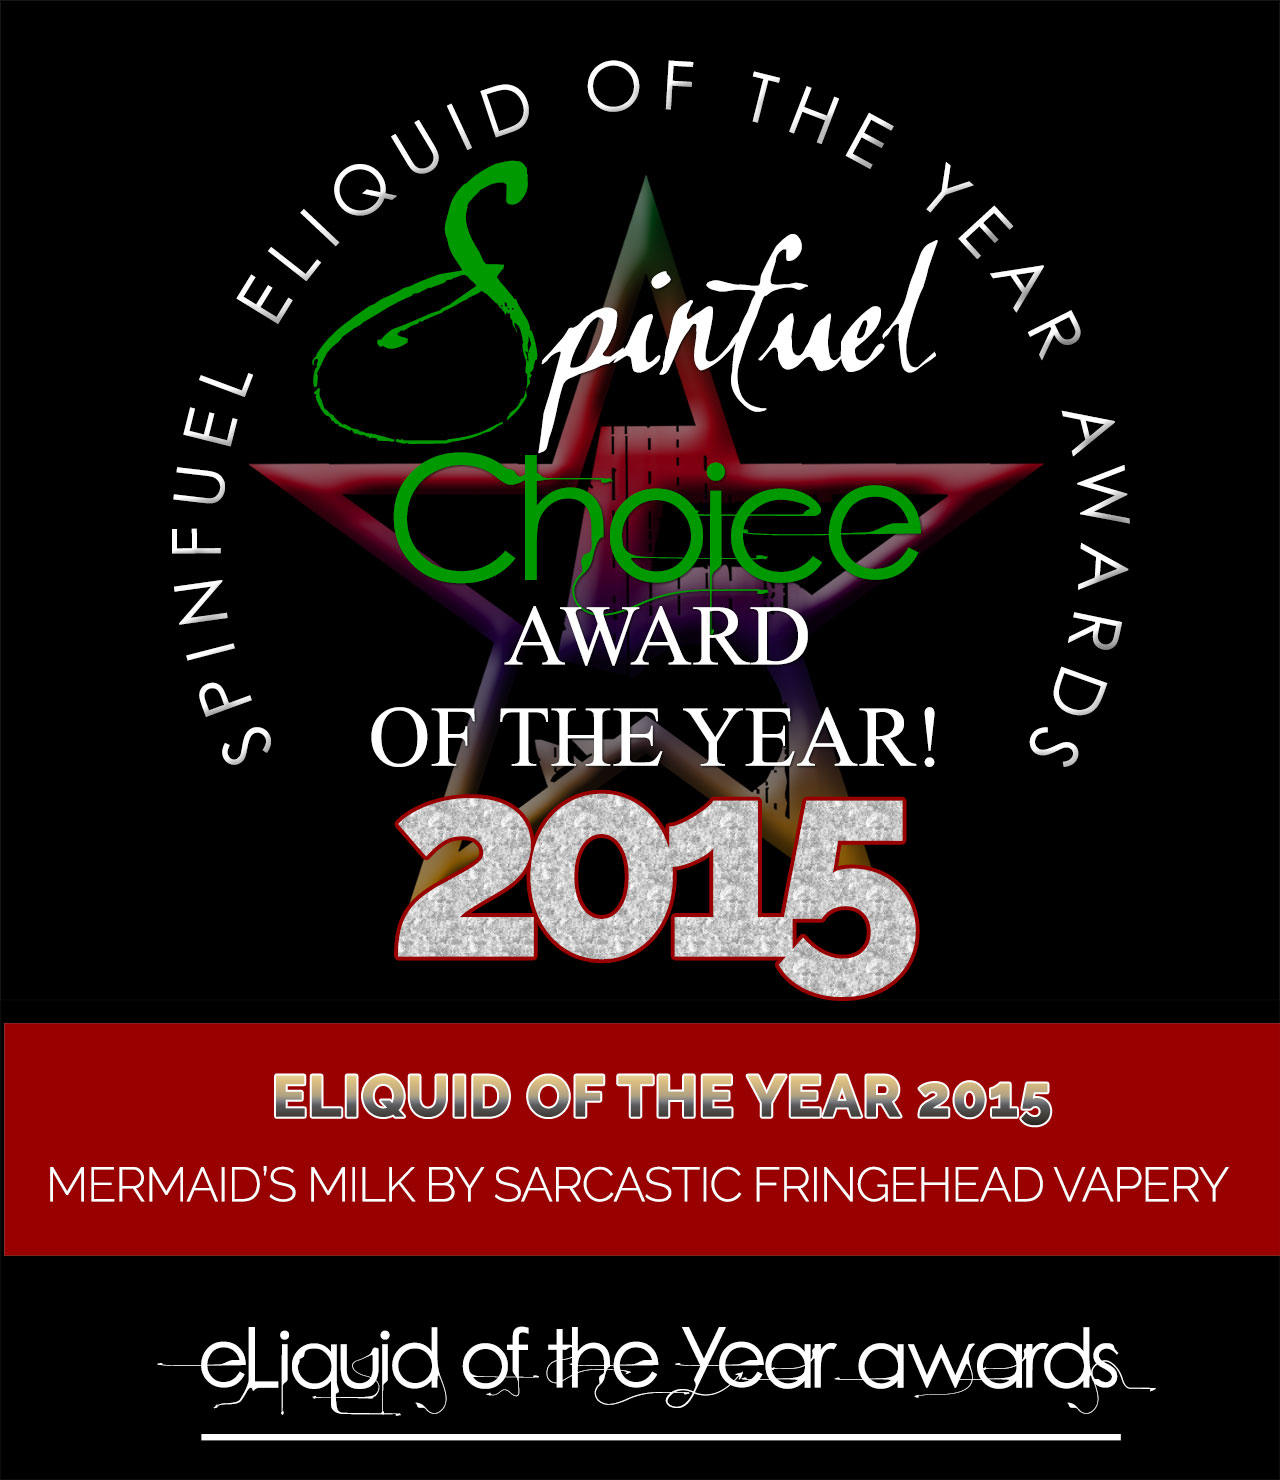 BST-OF-THE-YEAR-2015 - Spinfuel Choice Award 2015